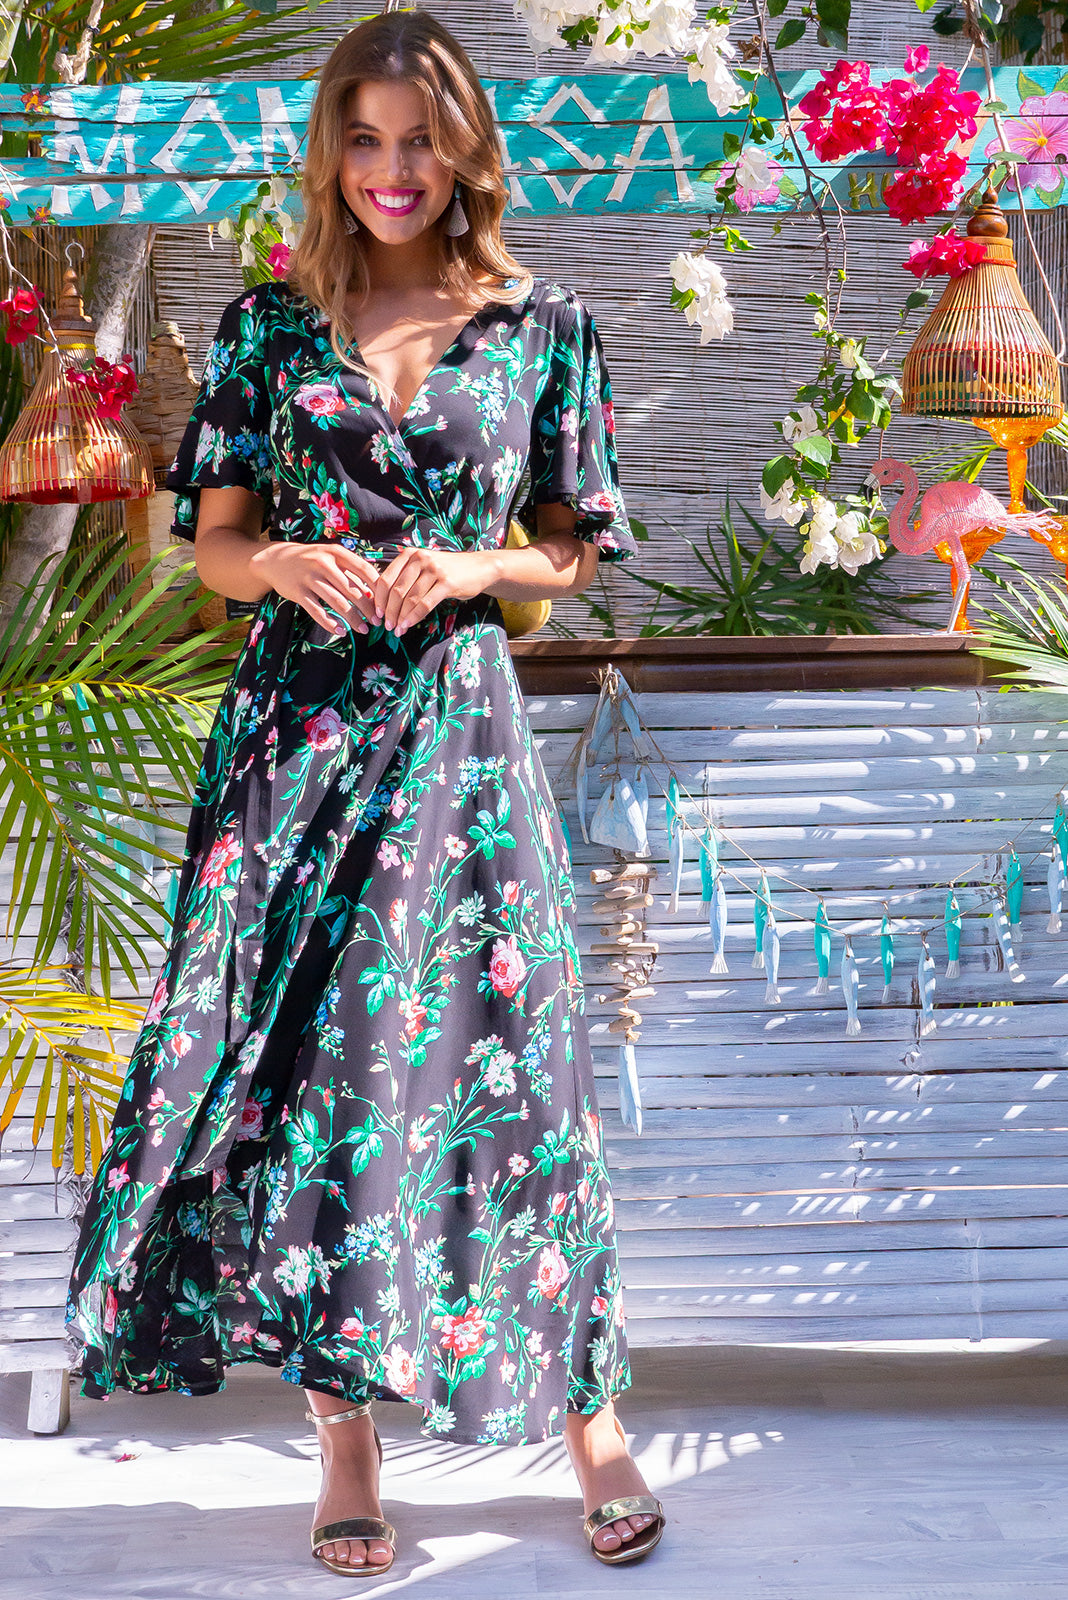 Petal Cotswold Noir Maxi Wrap Dress black based bohemian print rayon design. True wrap dress with flutter sleeves.